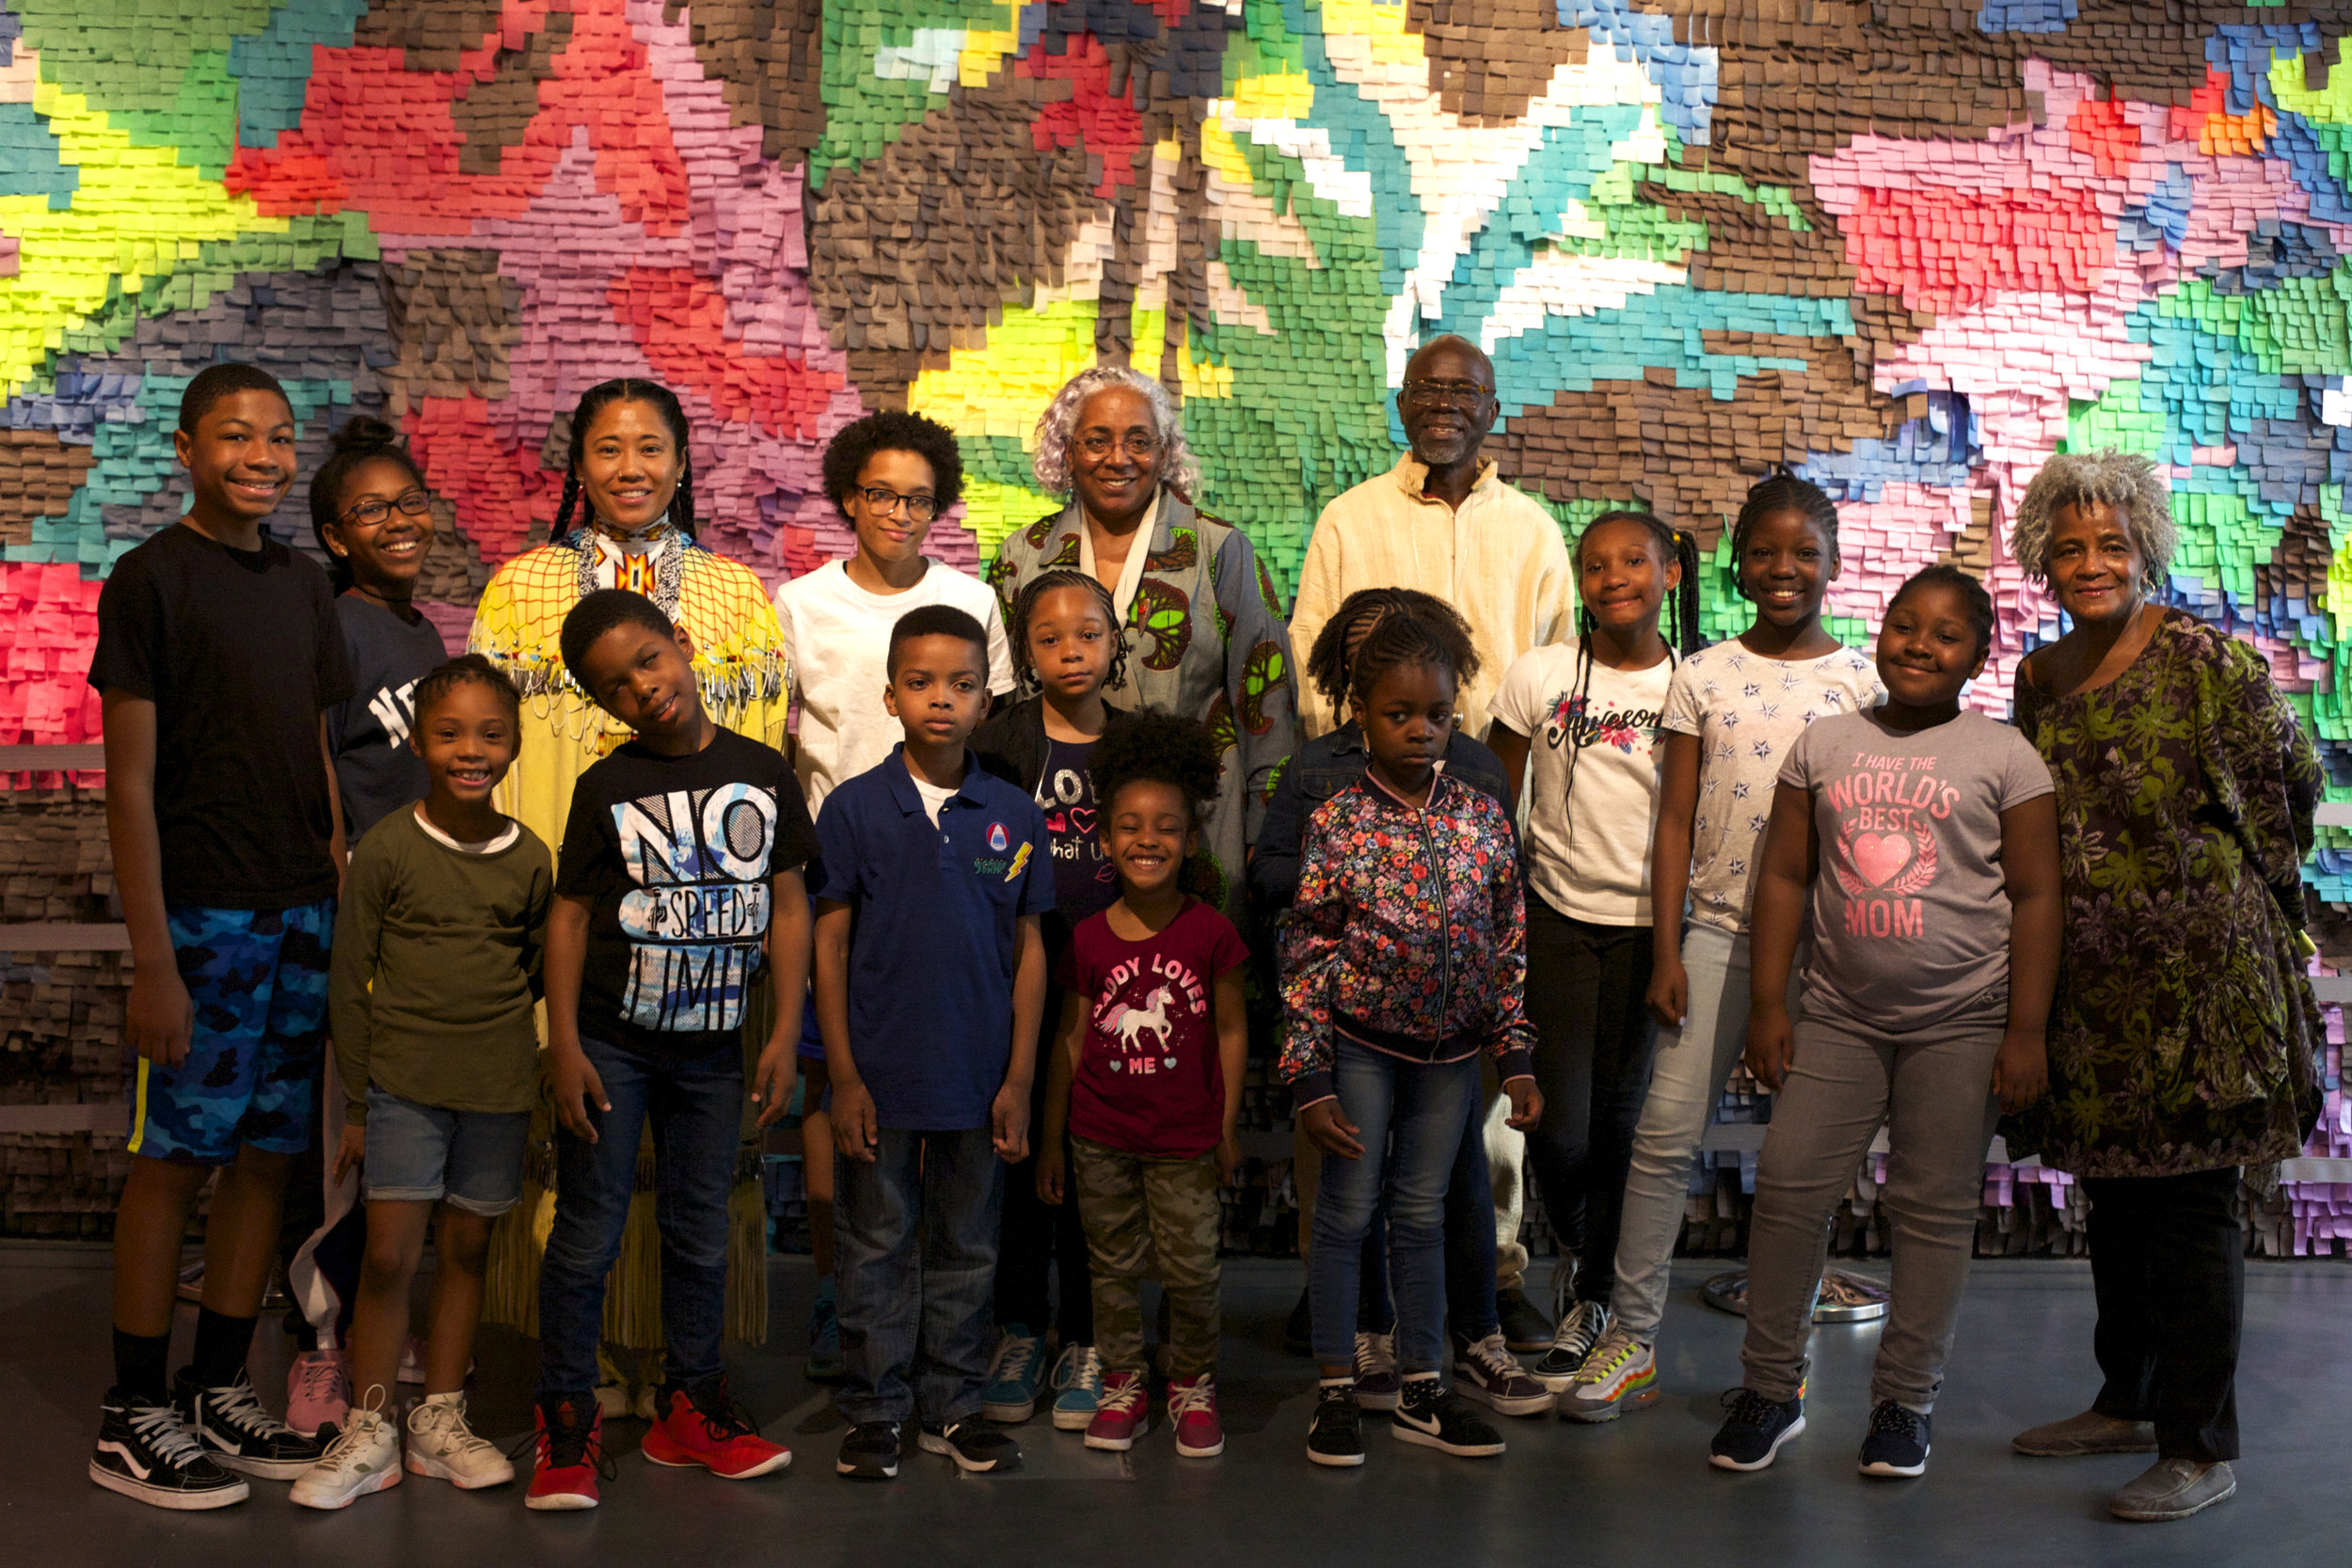 Workshops - This Grandparent's StoryLab workshop was held in collaboration with The Sugar Hill Children's Museum of Art and Storytelling, Double Dutch Dreamz, and The Significant Elders.To book a podcast workshop with The Grandparents Storylab please email grandparentsstorylab@gmail.com